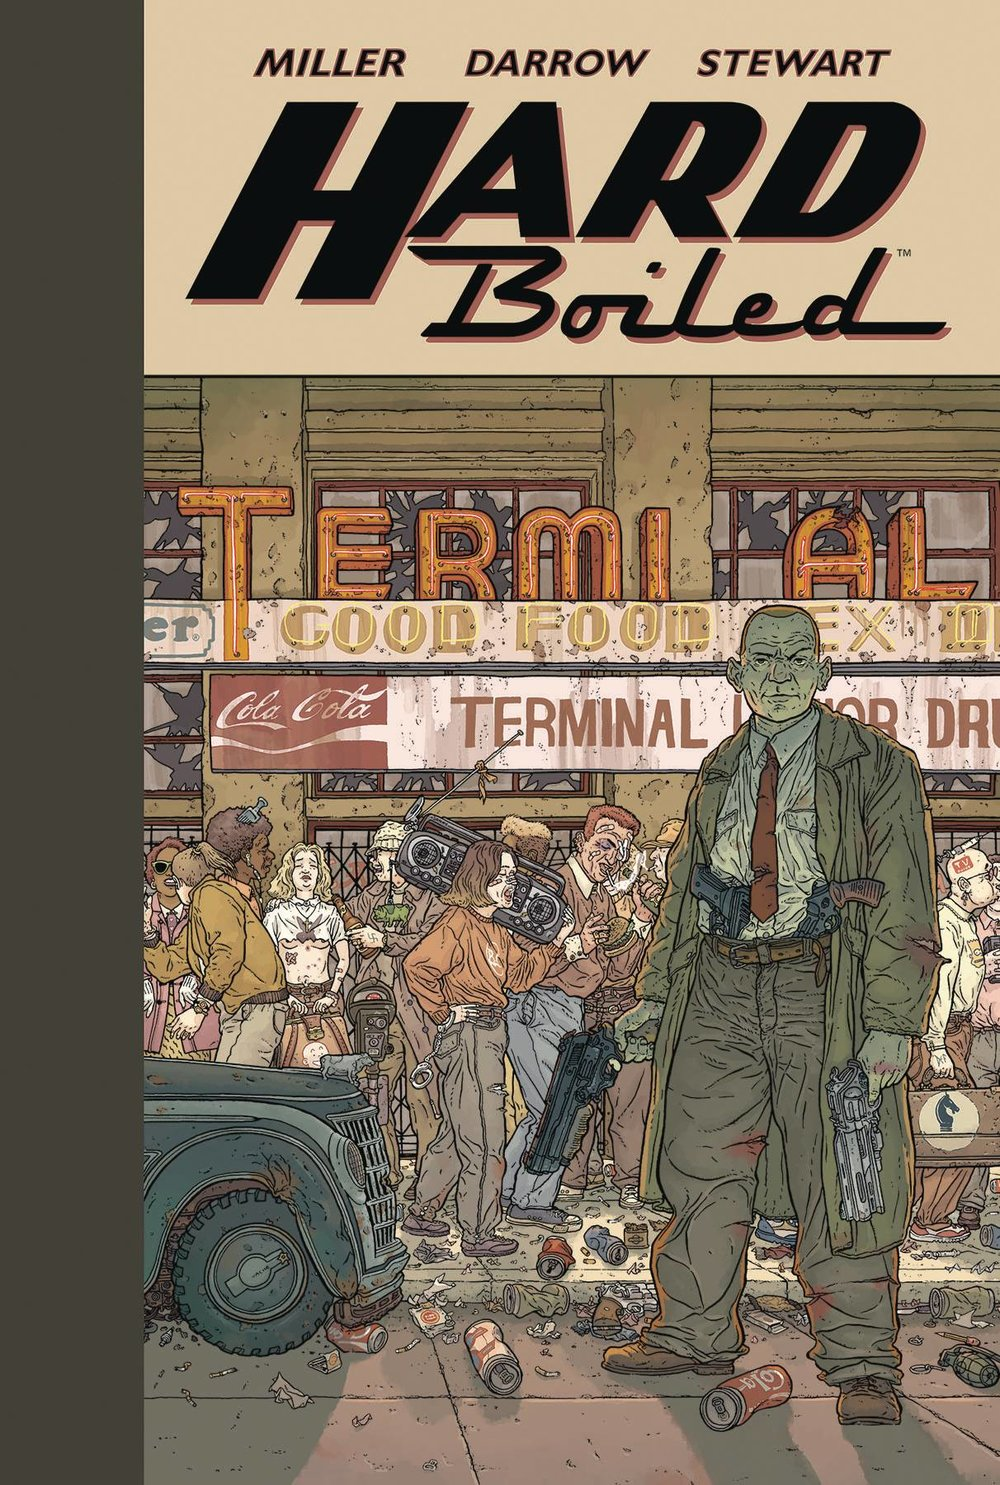 HARD BOILED HC ED 02.jpg